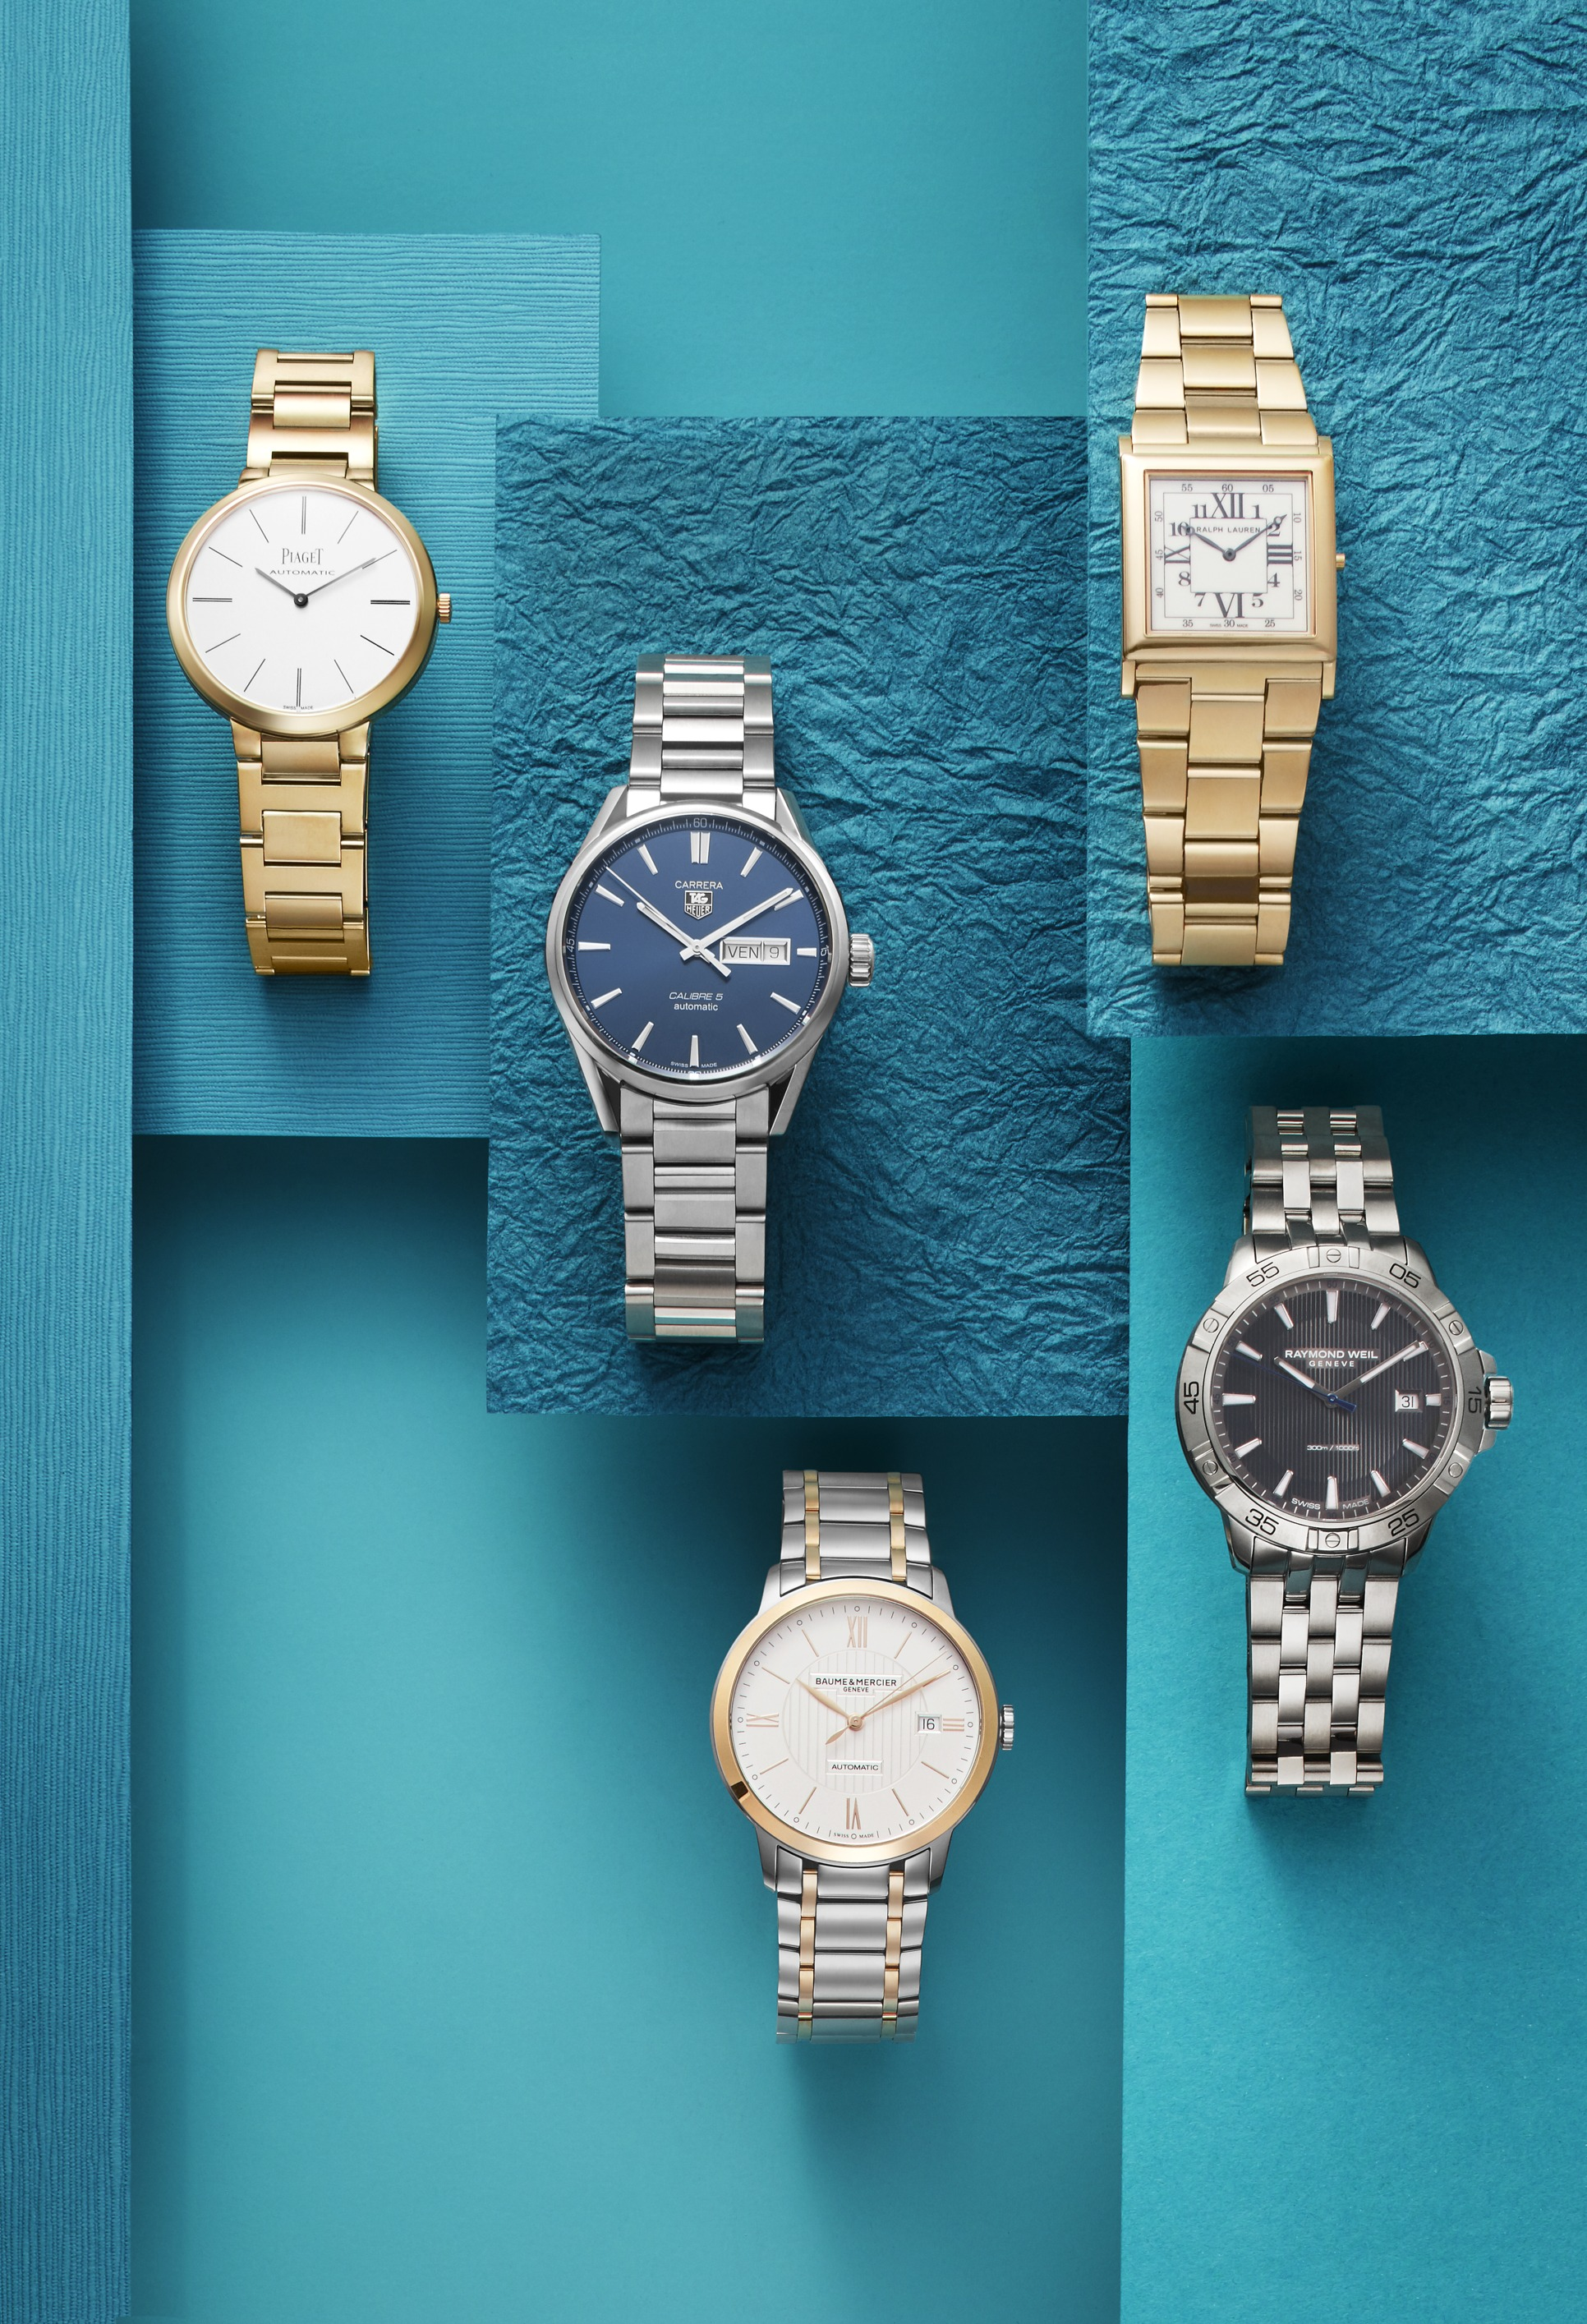 How to Choose the Perfect Watch for Your Groom-to-Be